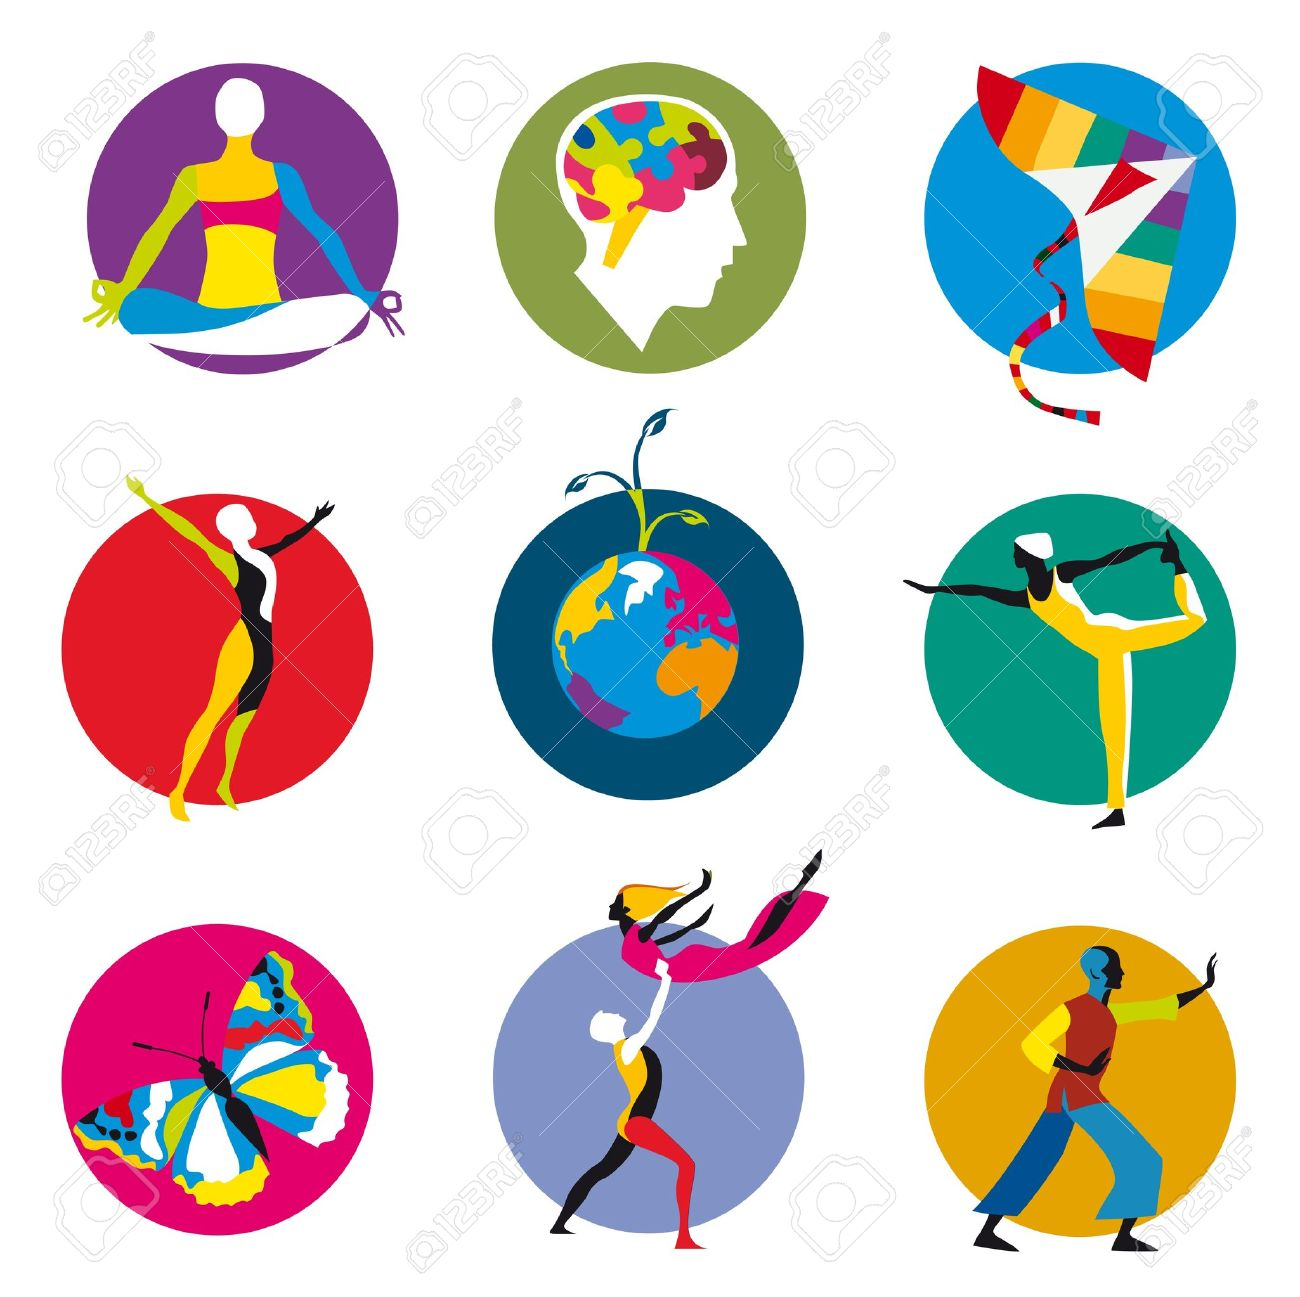 vector icons for human development activities inside colored circles Stock Vector - 11119647